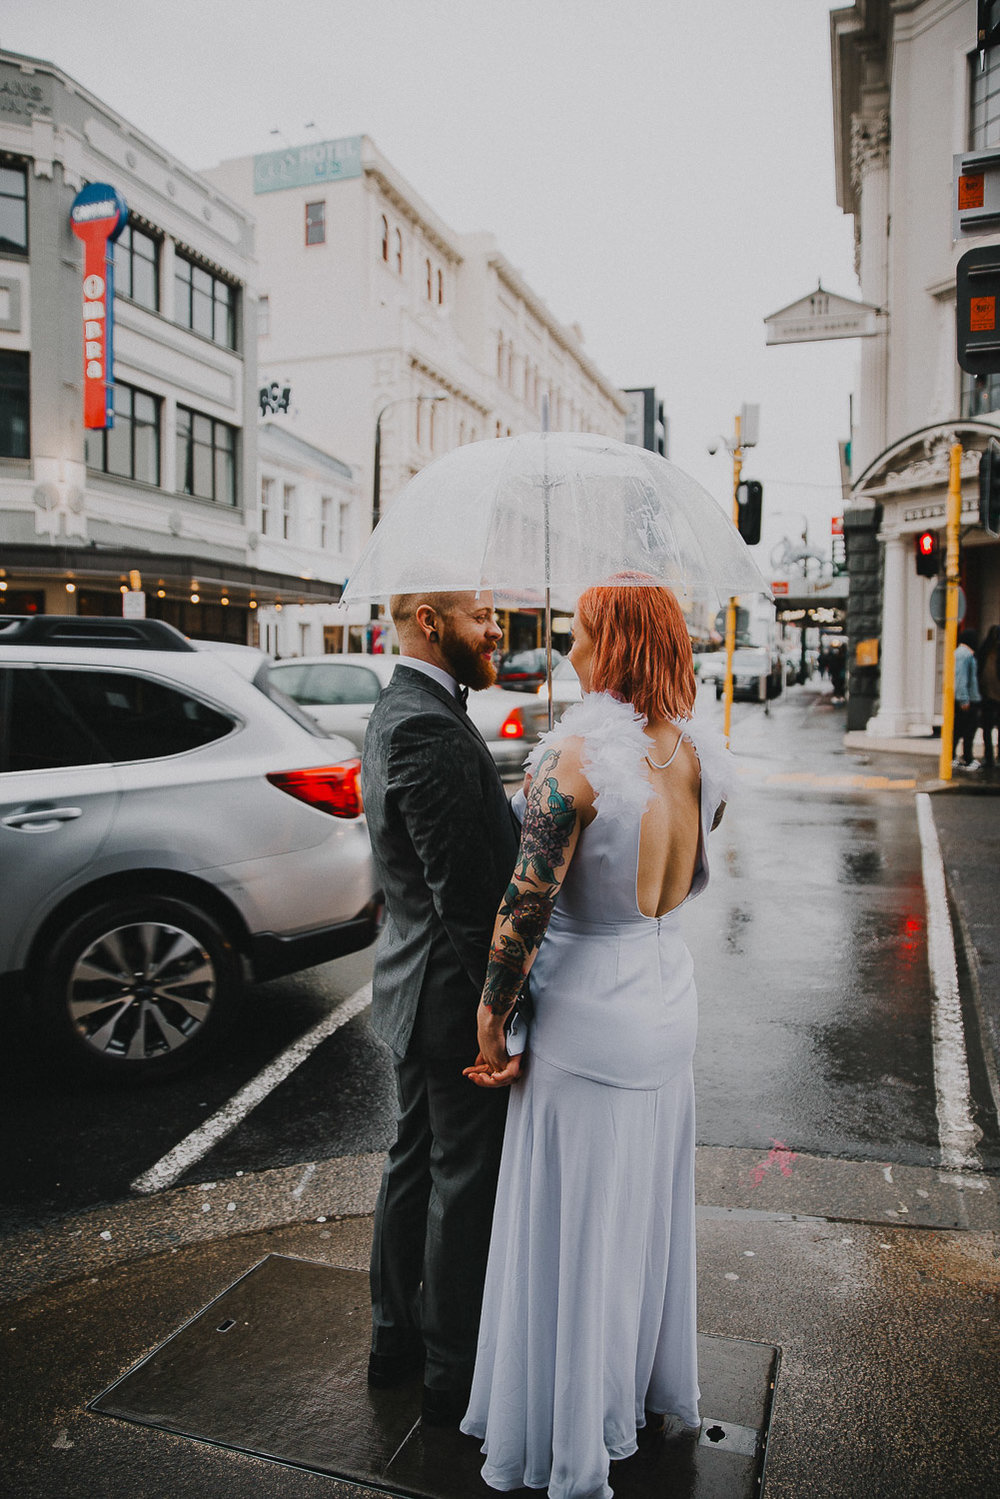 Romantic photo of  modern city wedding in the rain